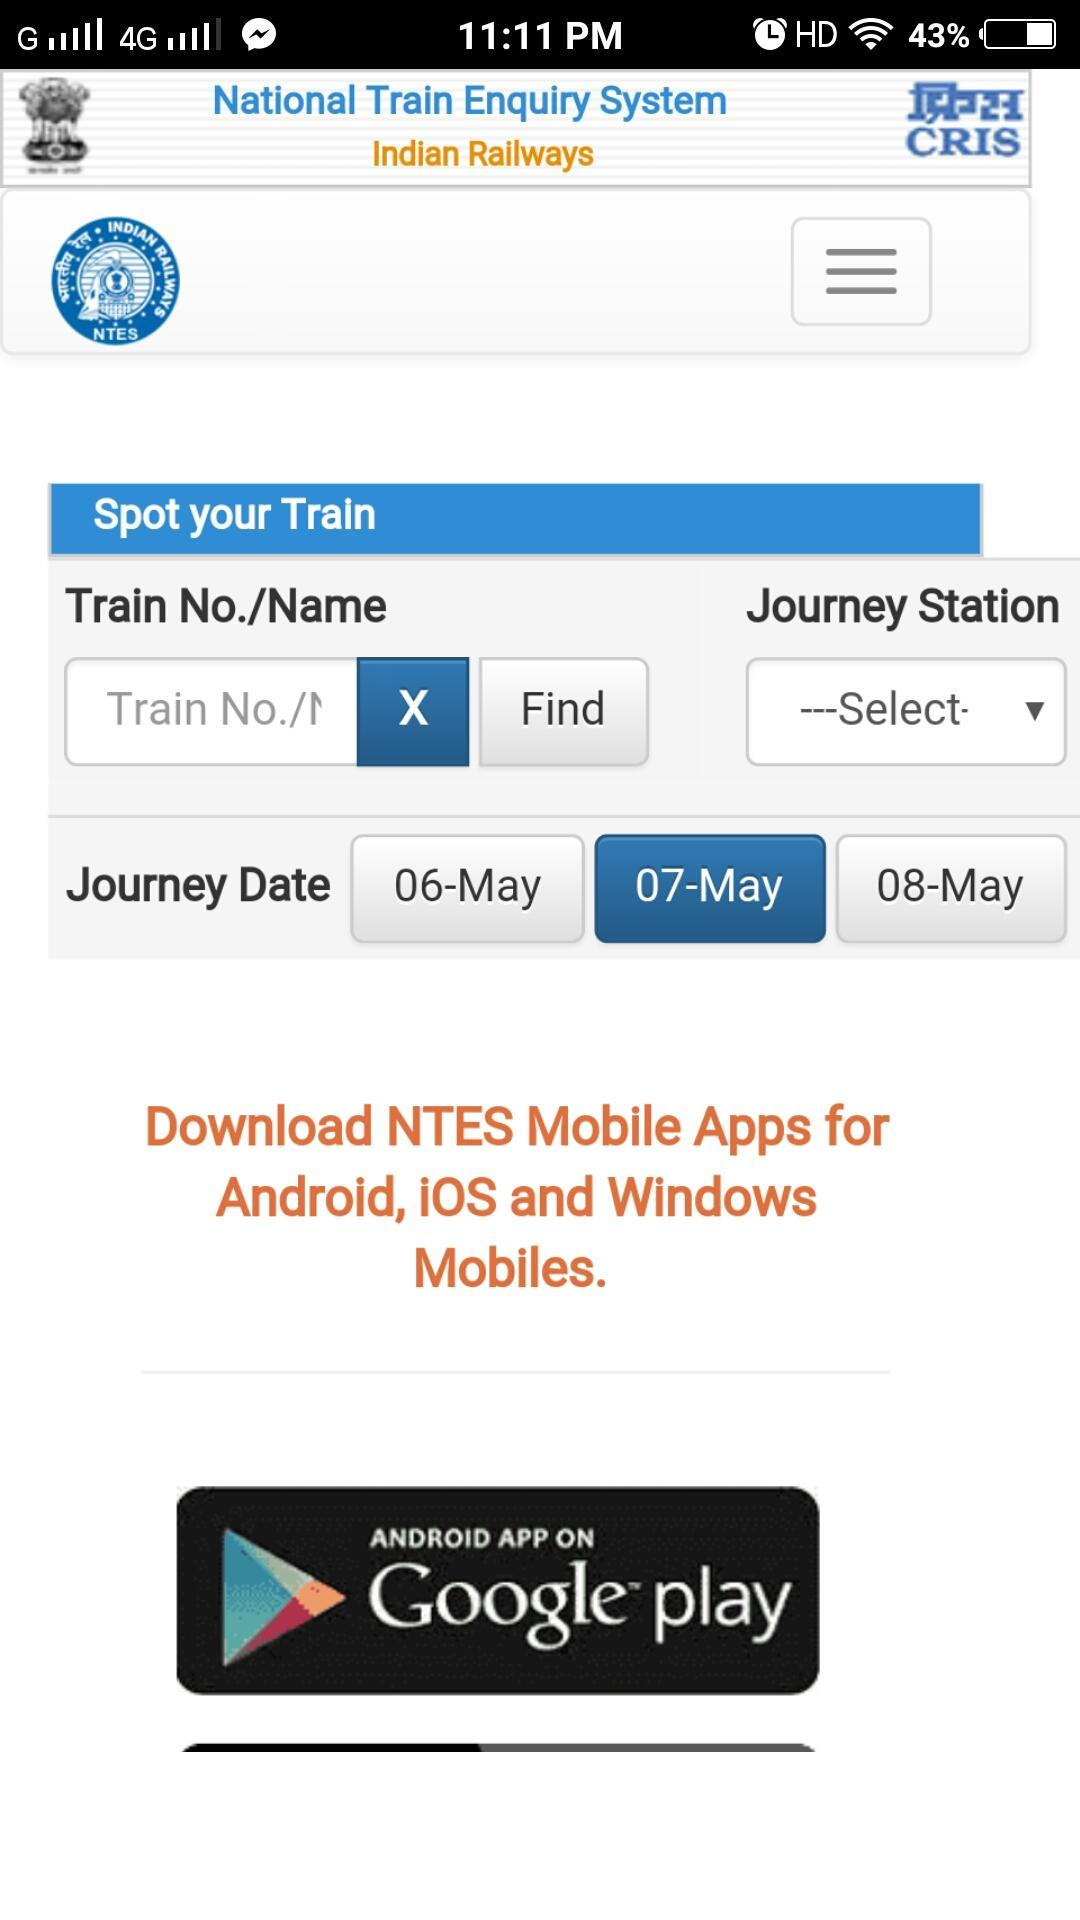 National Train Enquiry System 2018 For Android Apk Download